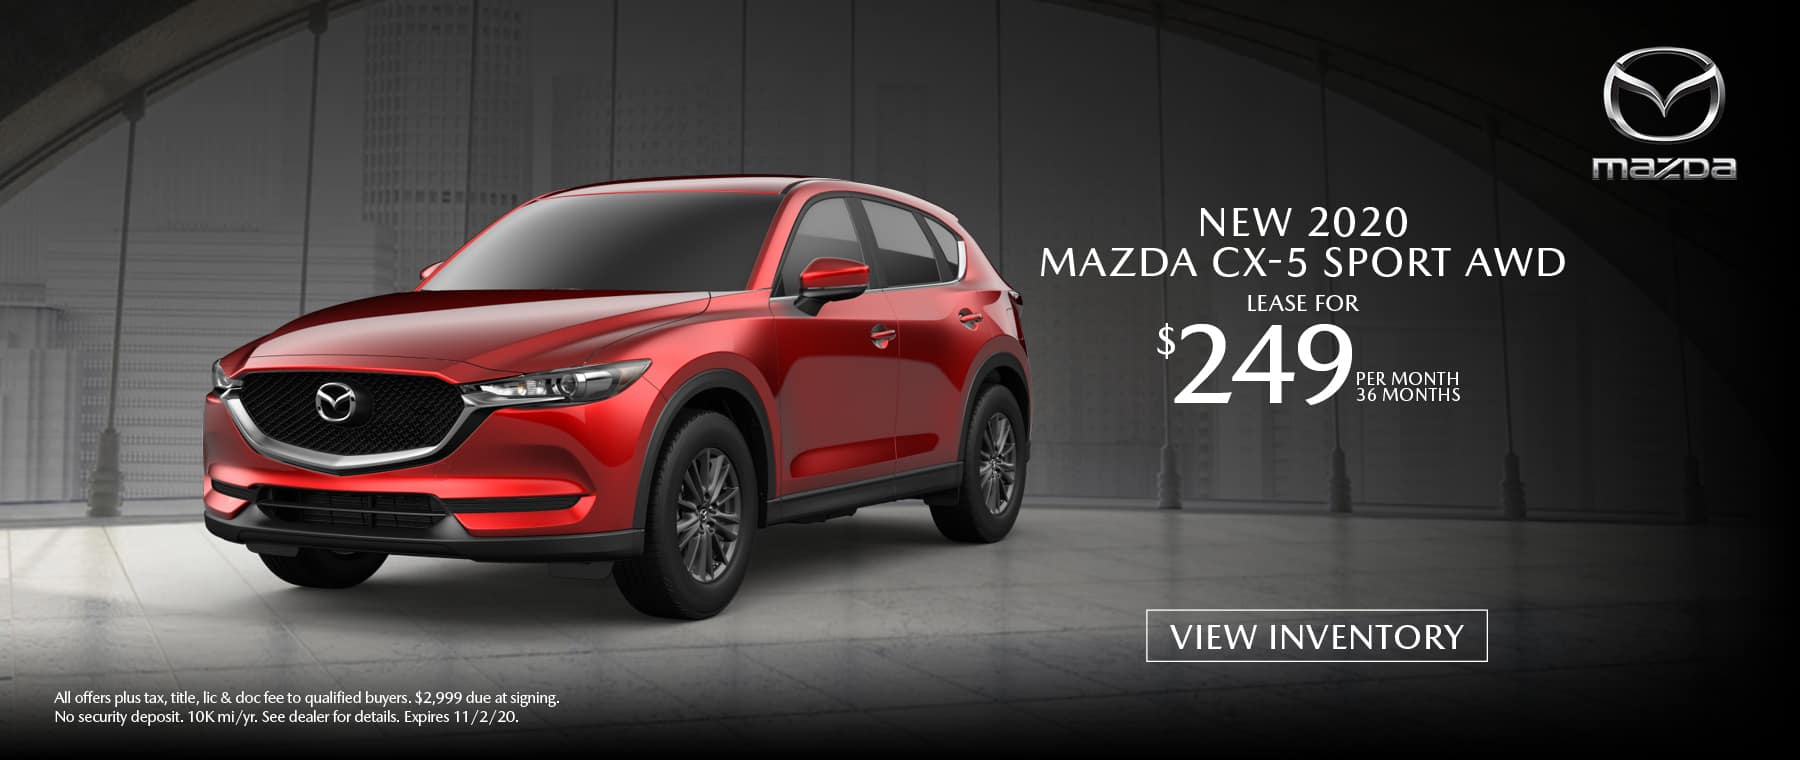 PUGI-MAZ-CX5-SPT-$249-OCT-1800×760